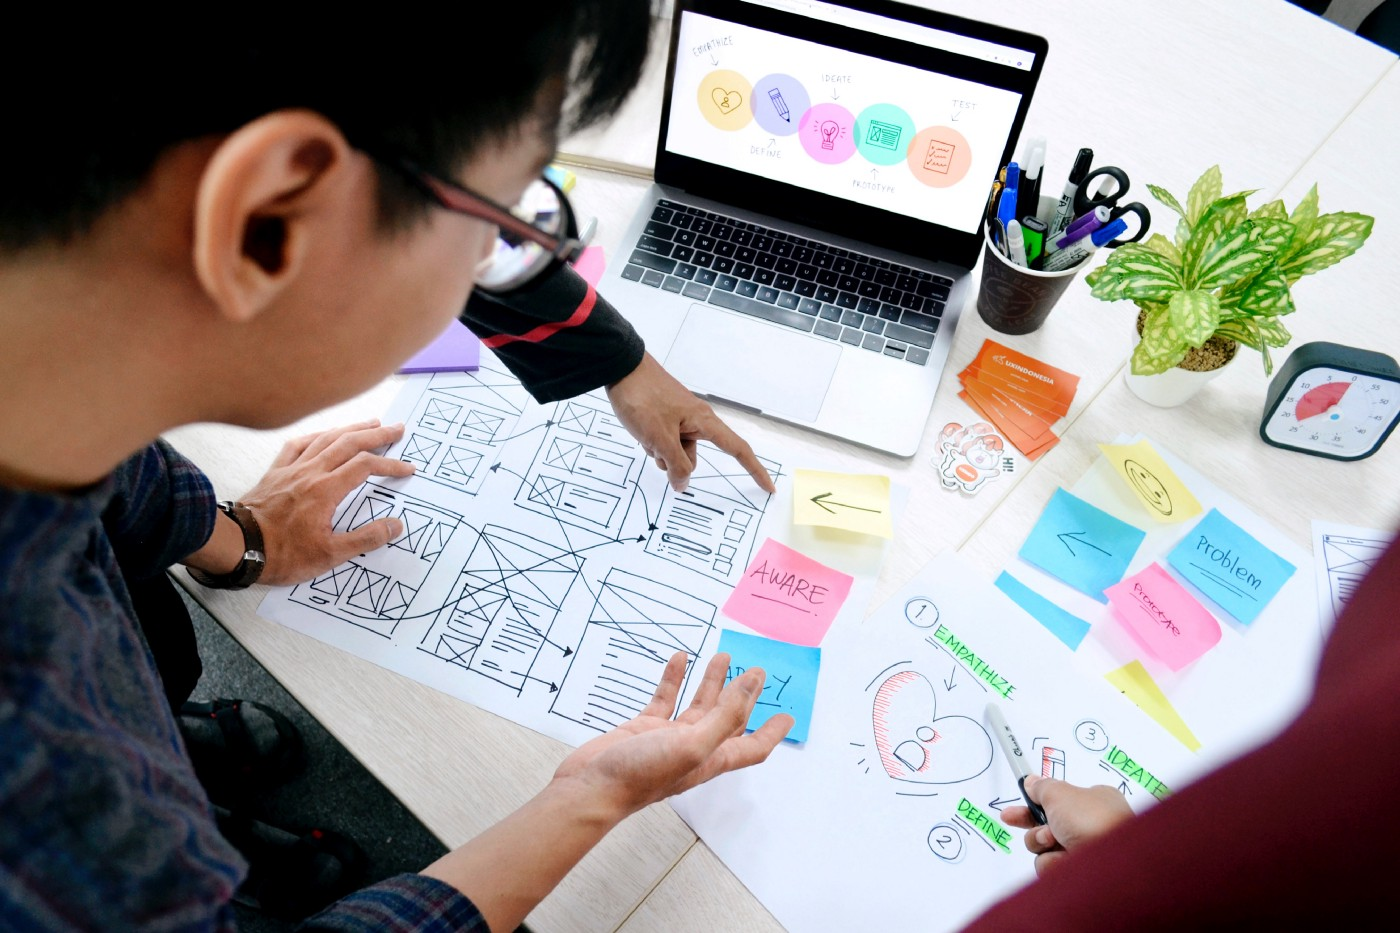 What is a UX Researcher? Let's Find Out Together